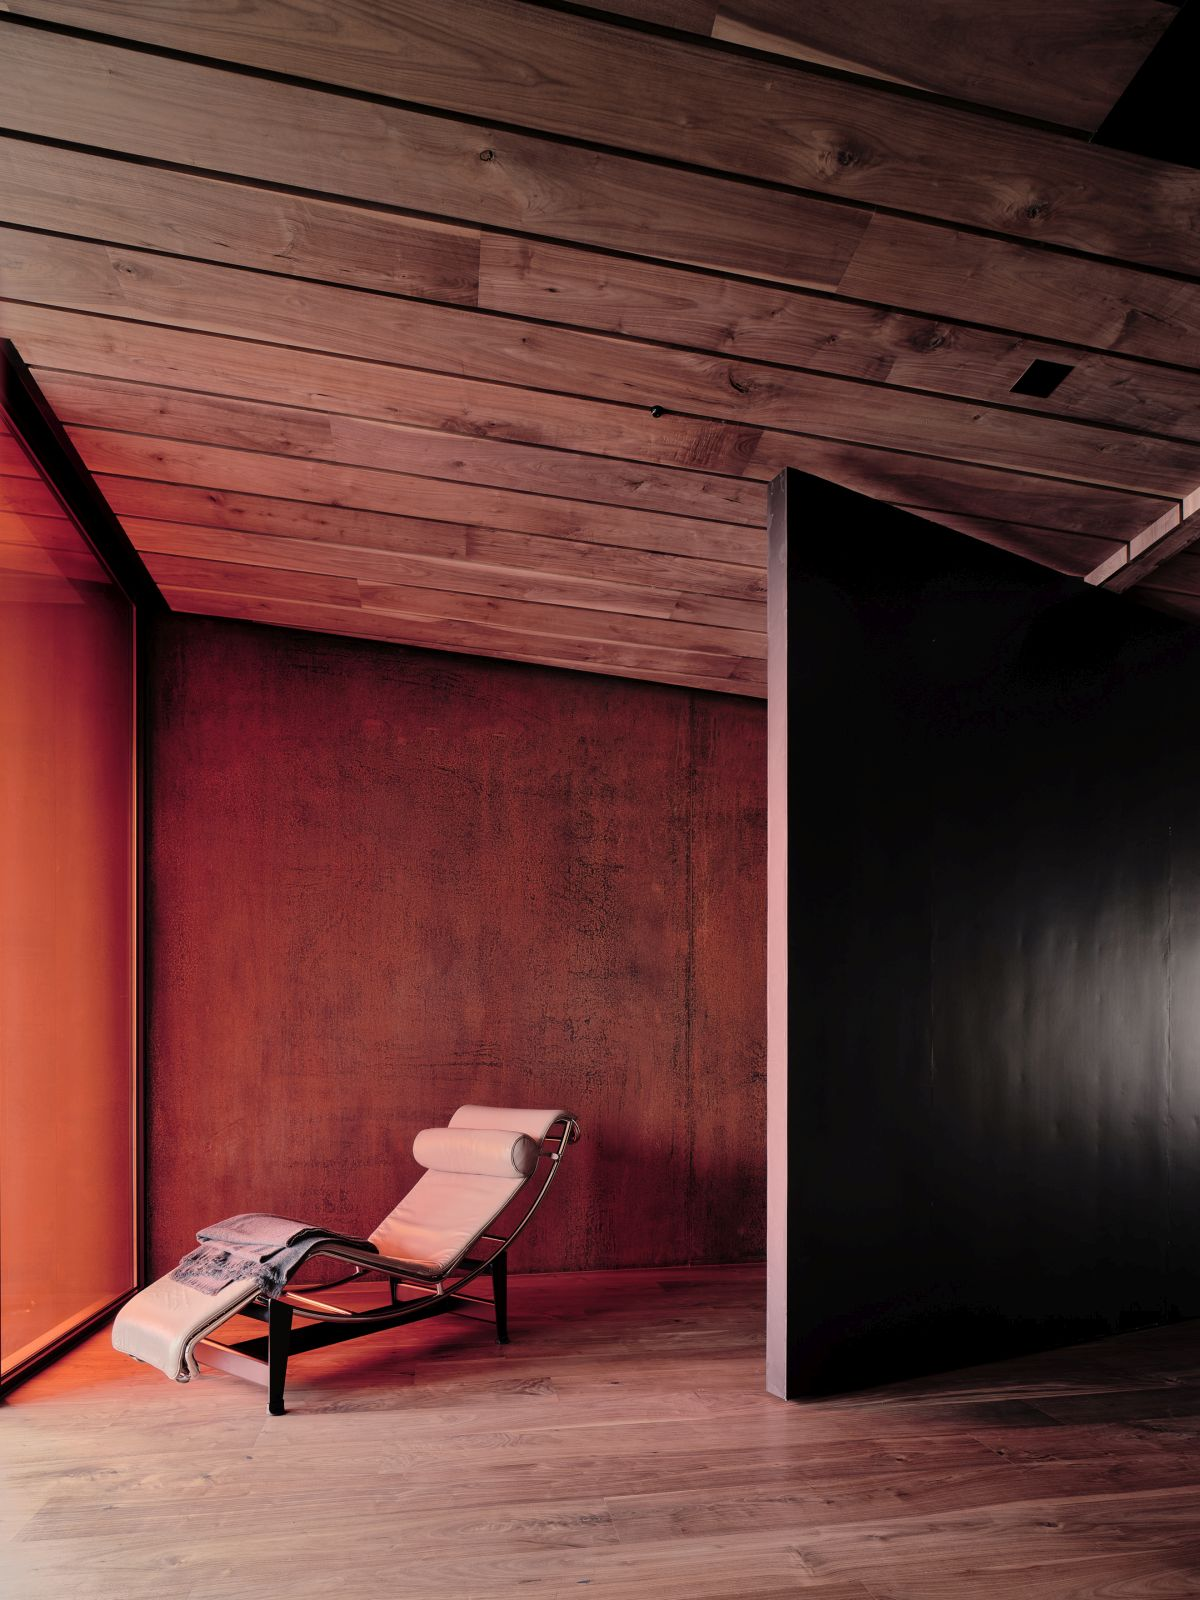 Although the house is very simple and makes use of very few materials, finishes and colors, it's also quite bold